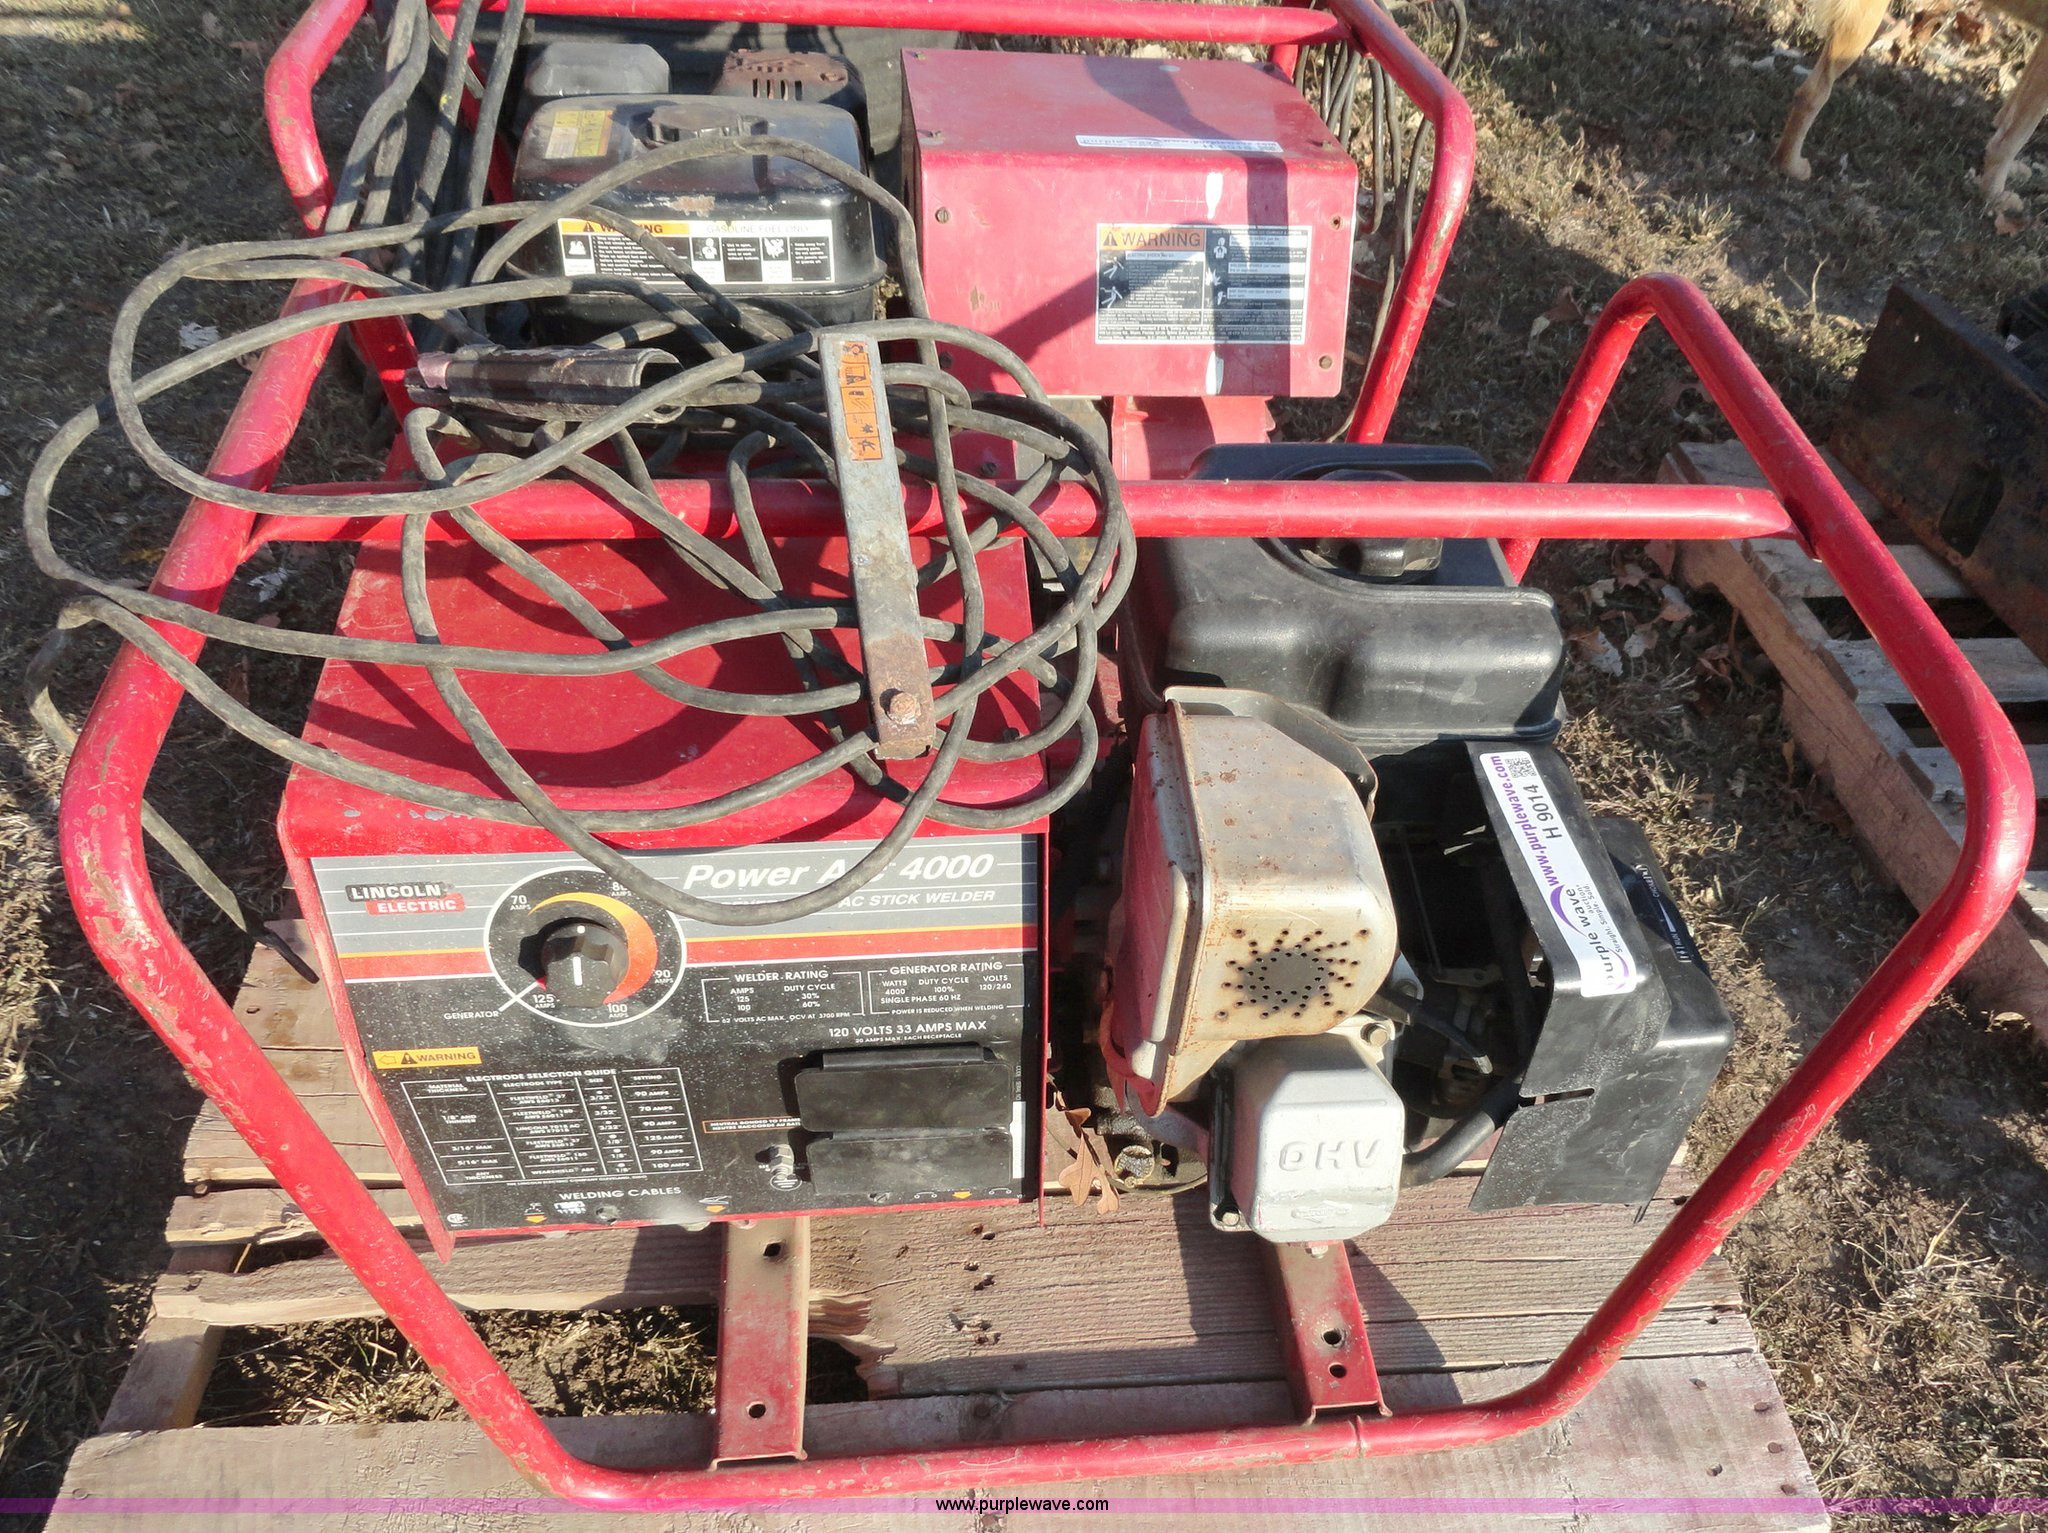 Lincoln Welders For Sale >> Lincoln Electric Power Arc 4000 welder/generator | Item ...